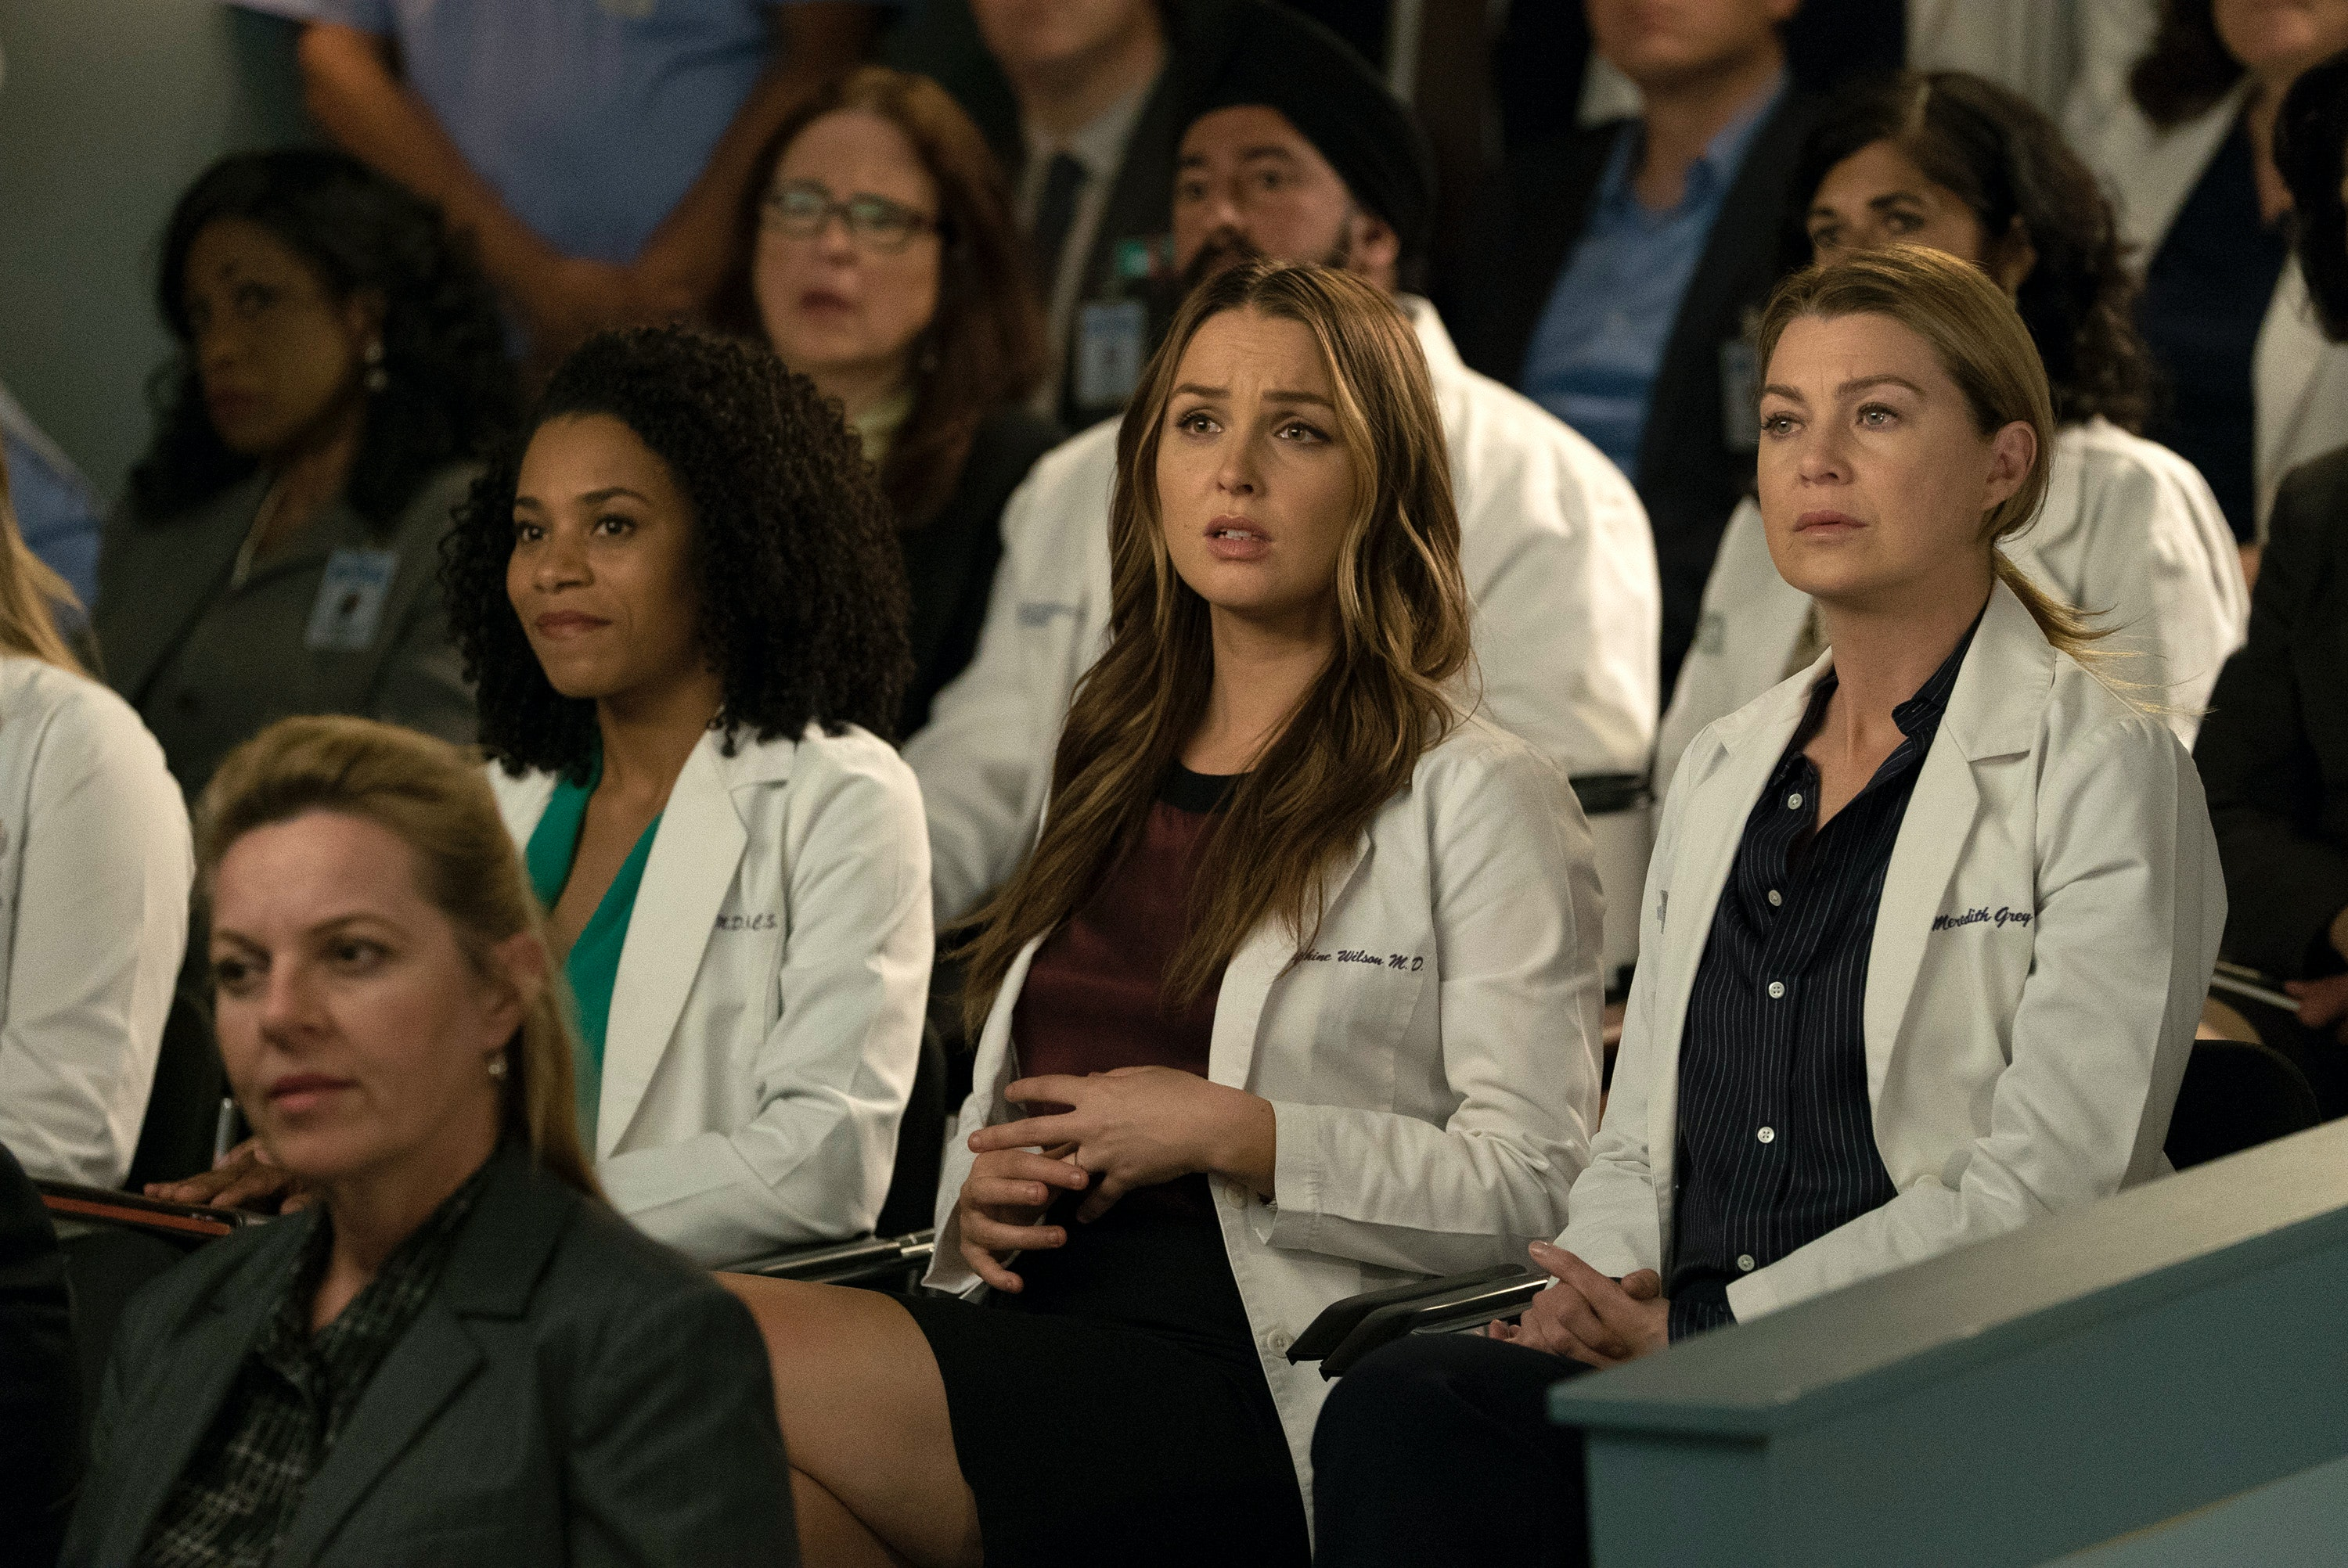 The Greys Anatomy Season 15 Premiere Will Be 2 Hours Long So Get